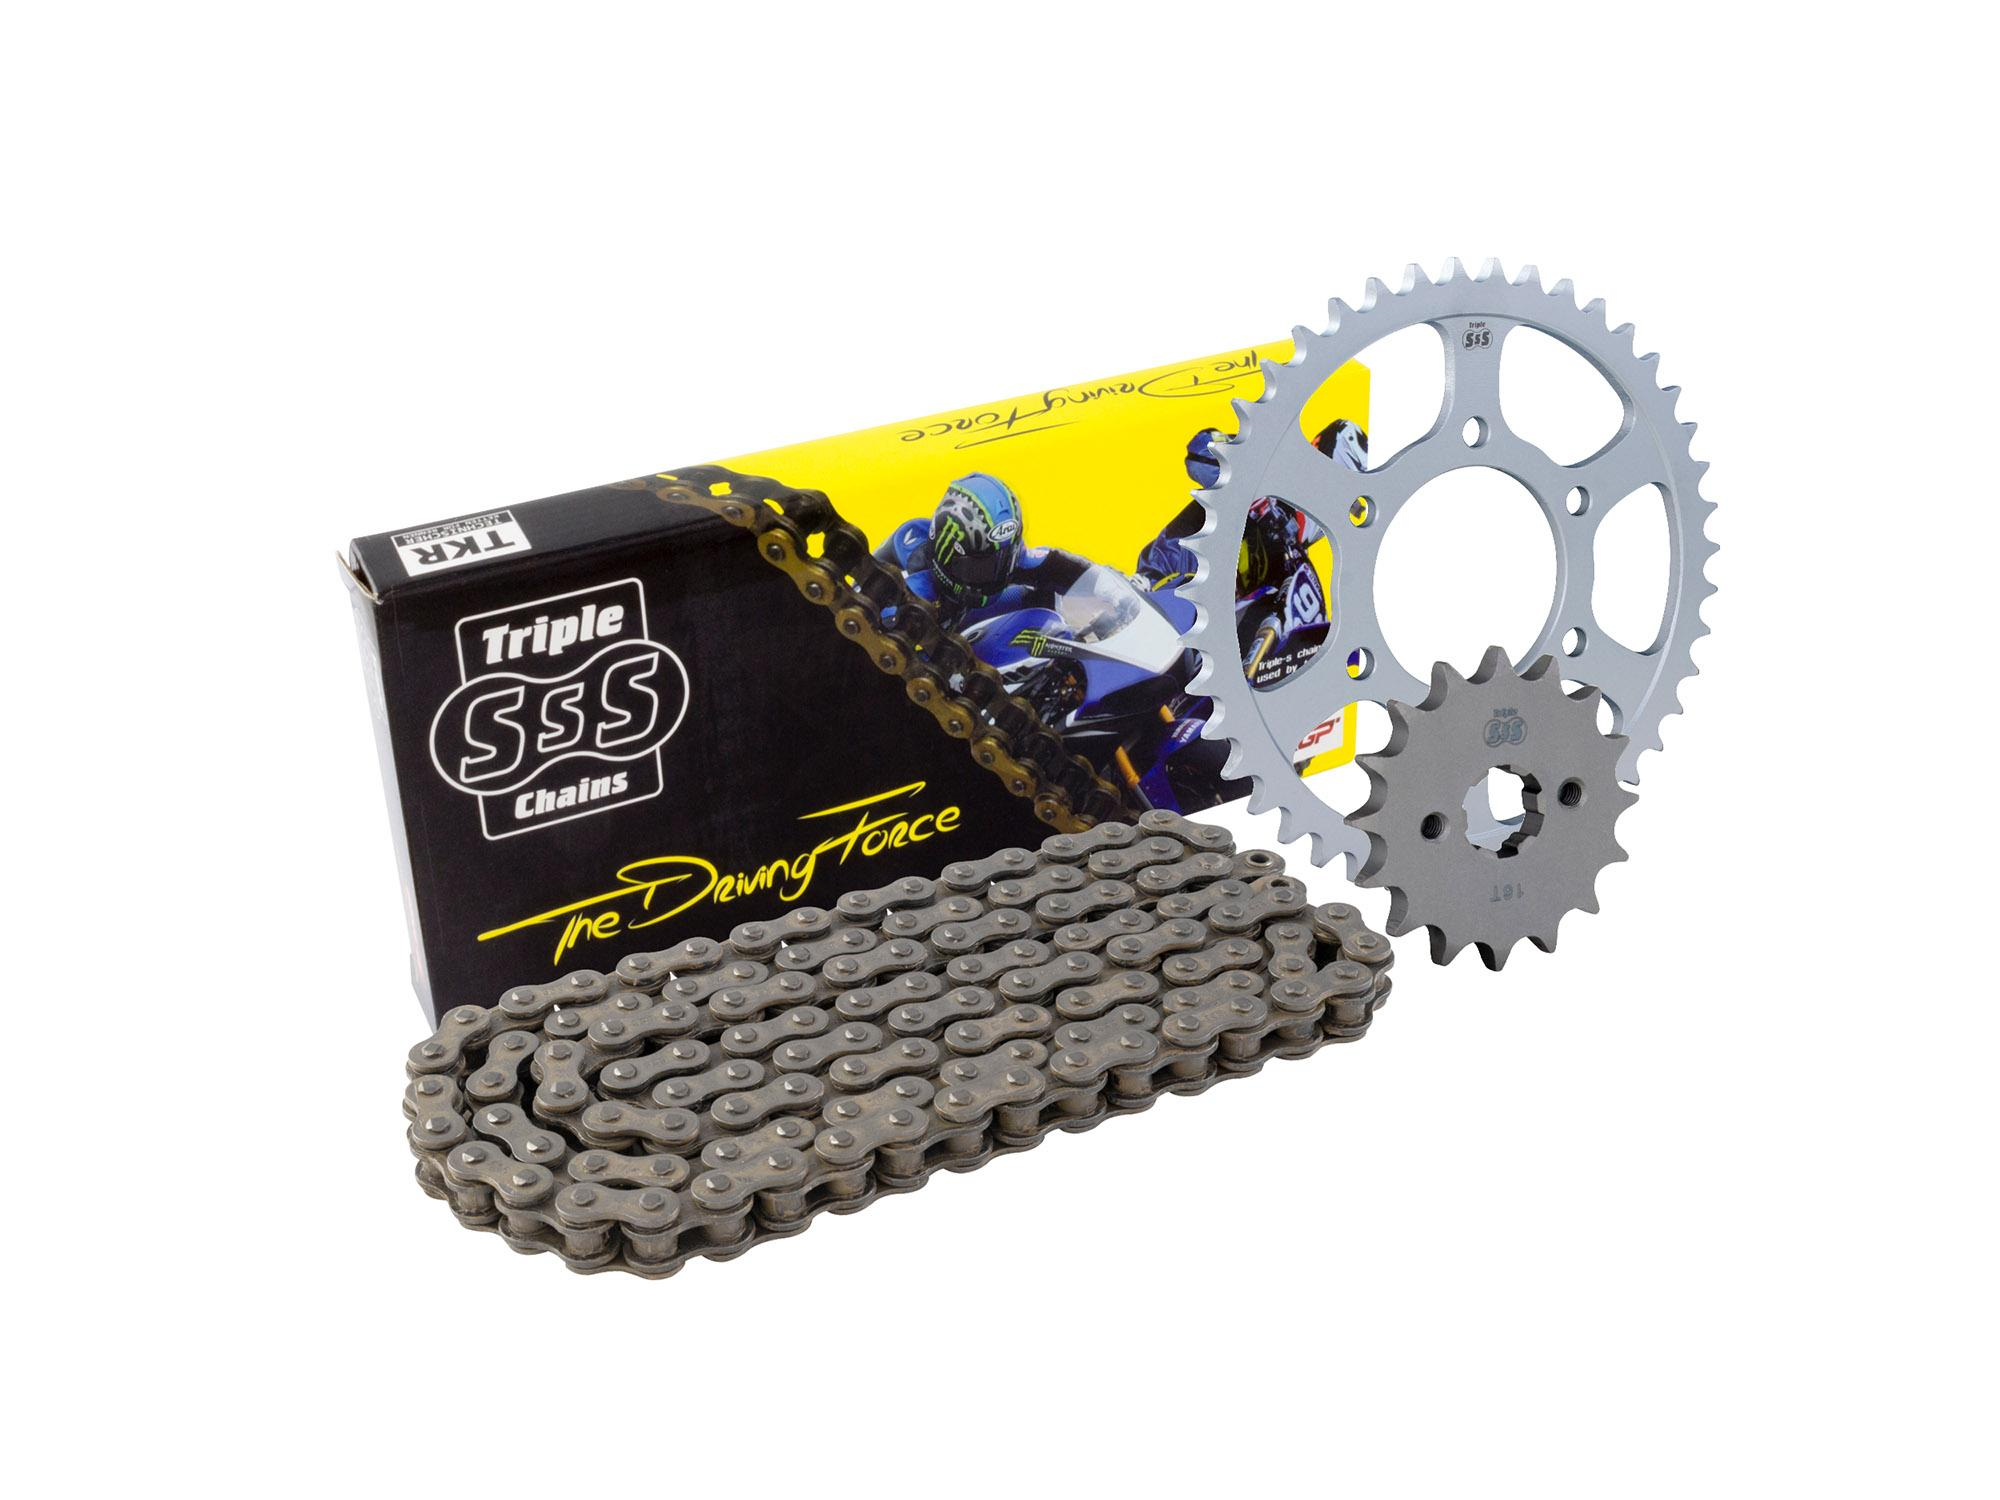 BMW G650 GS 11-15 Chain & Sprocket Kit: 16T Front, 47T Rear, HD O-Ring Black Chain 520H 112Link